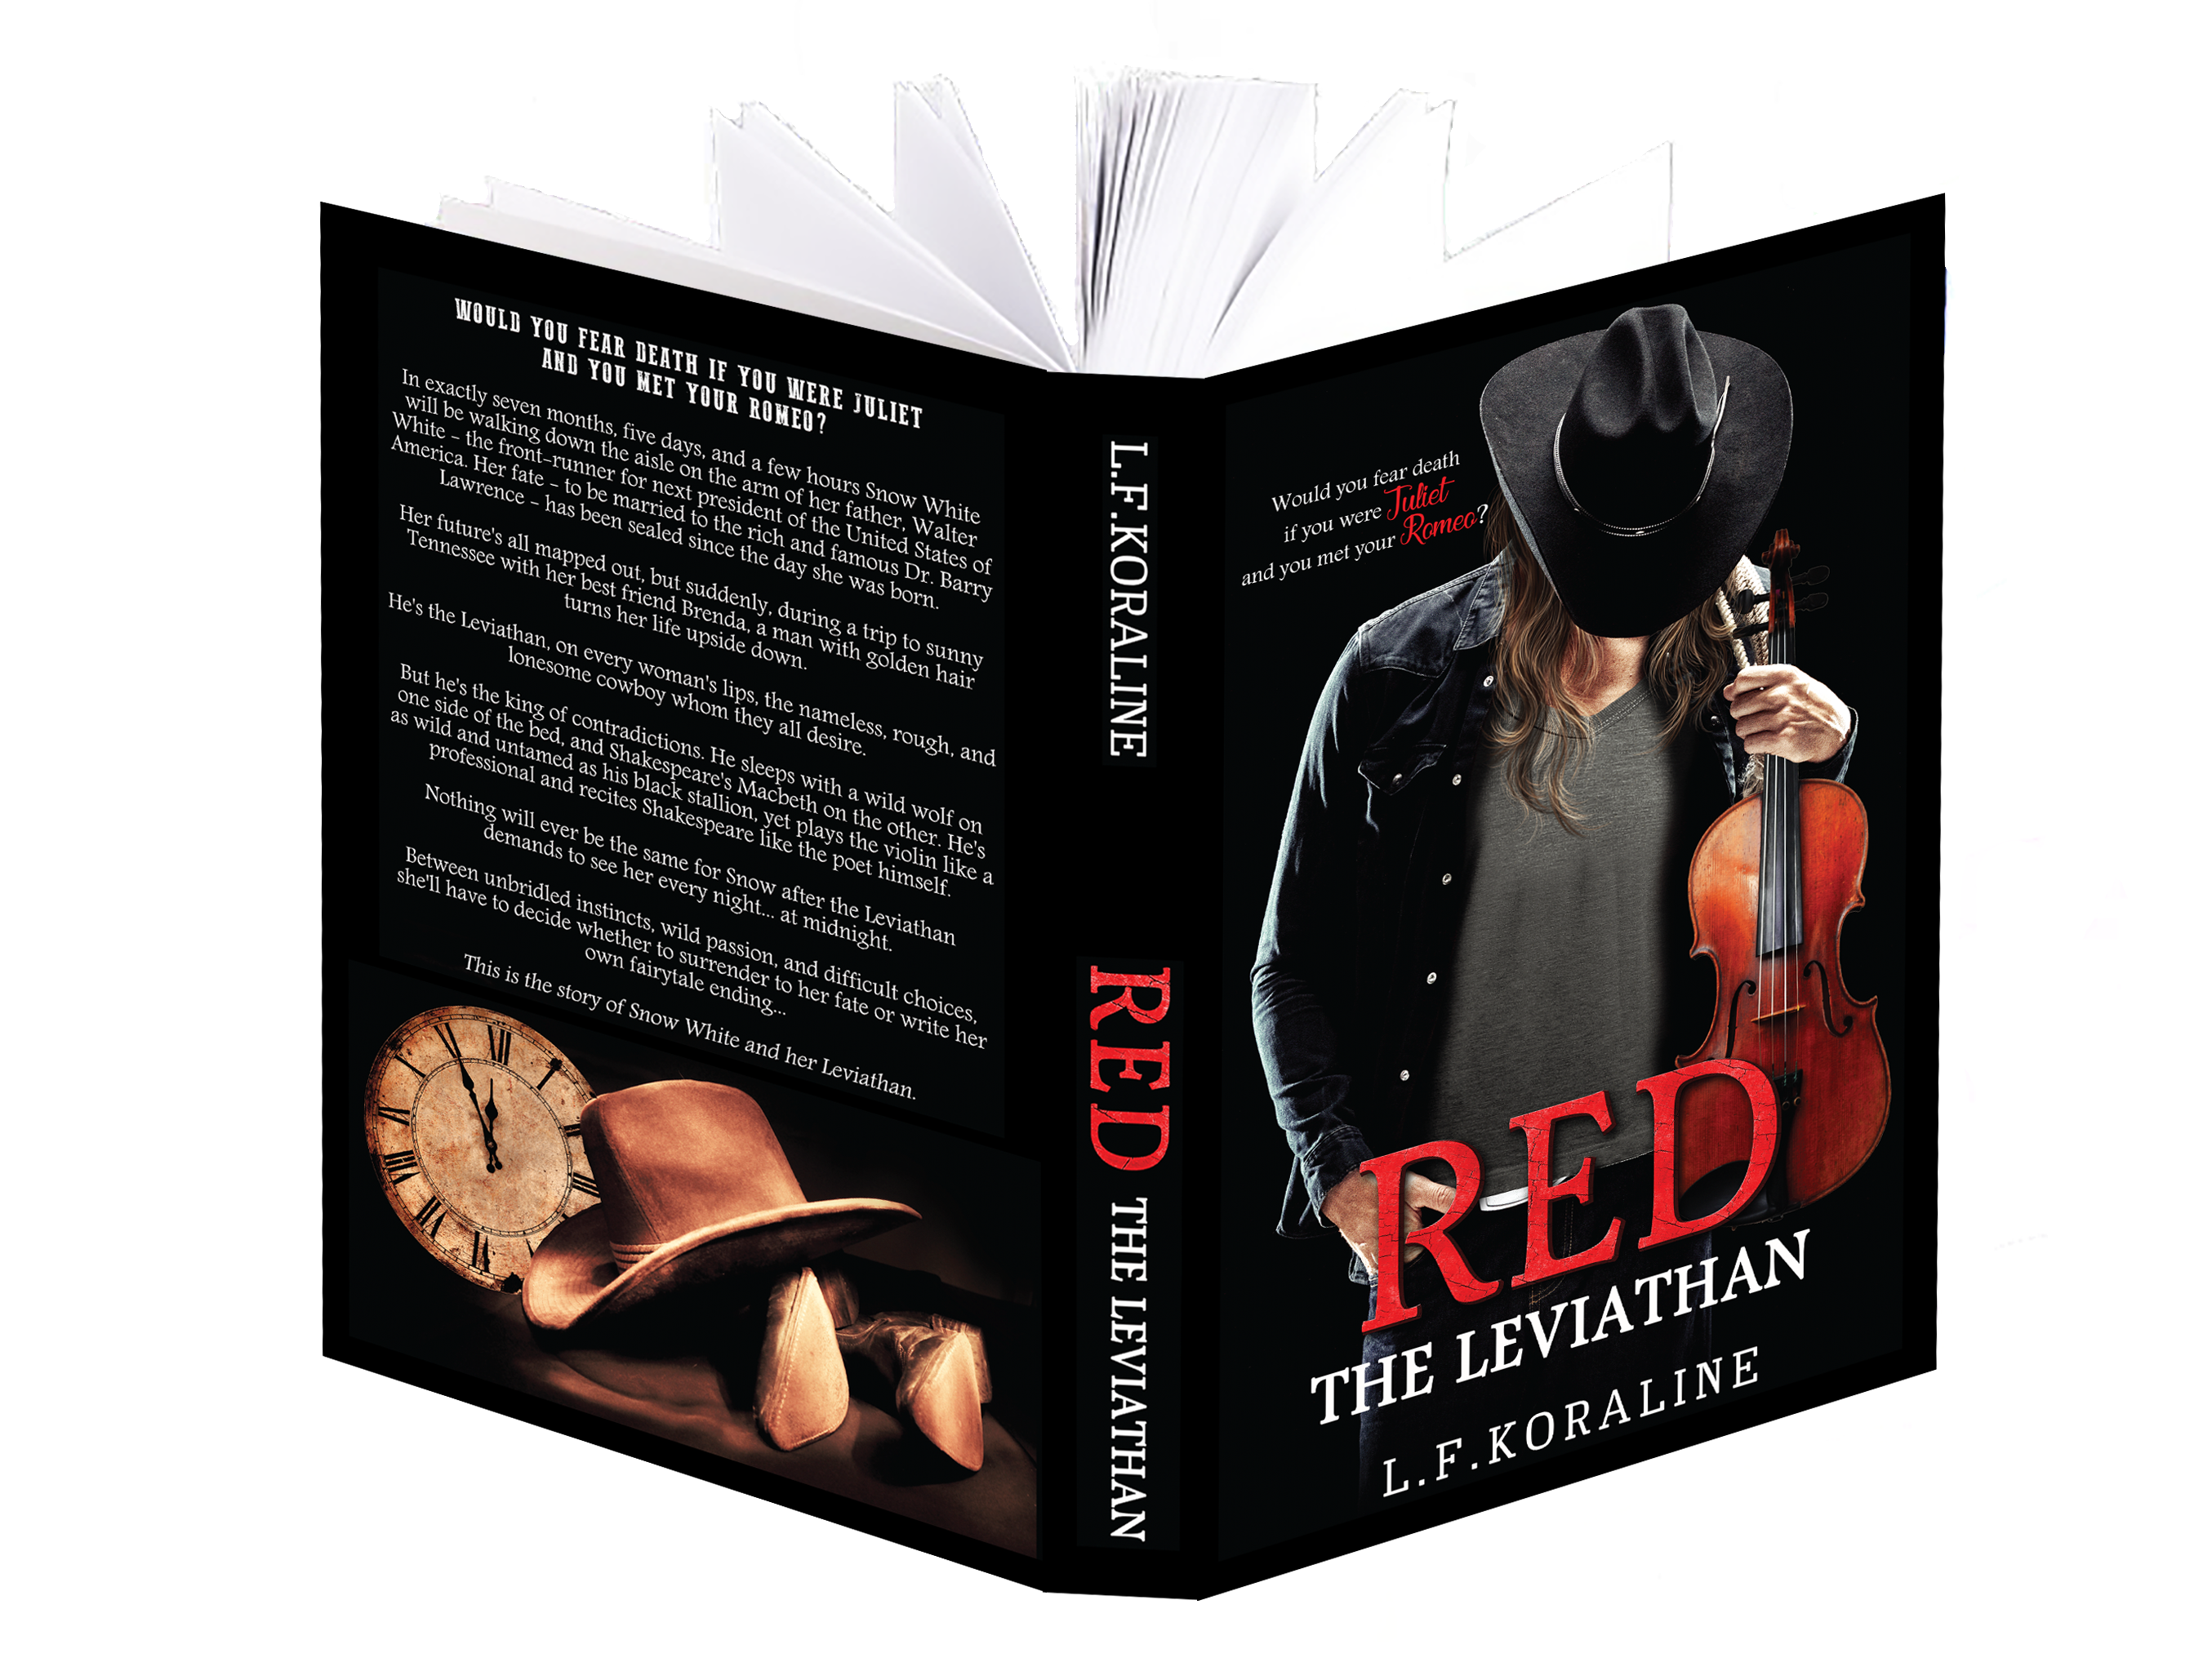 RED the Leviathan | L.F. Koraline